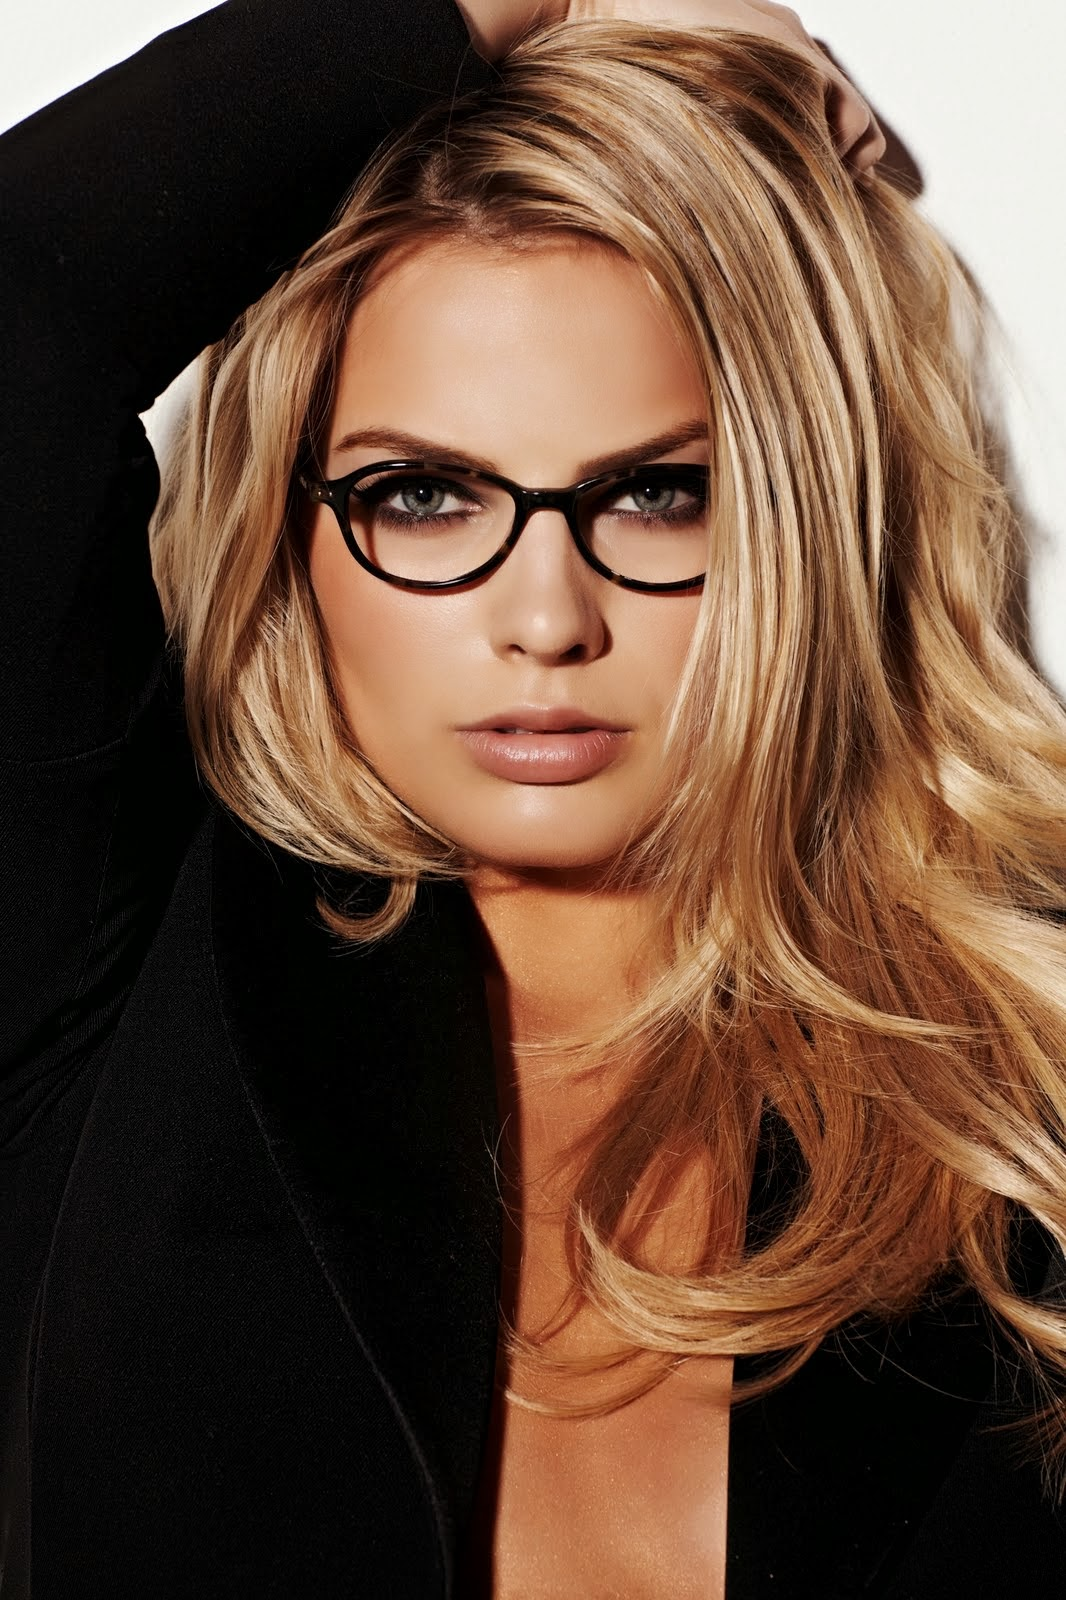 A Look At Amazingly Hot Actress Margot Robbie